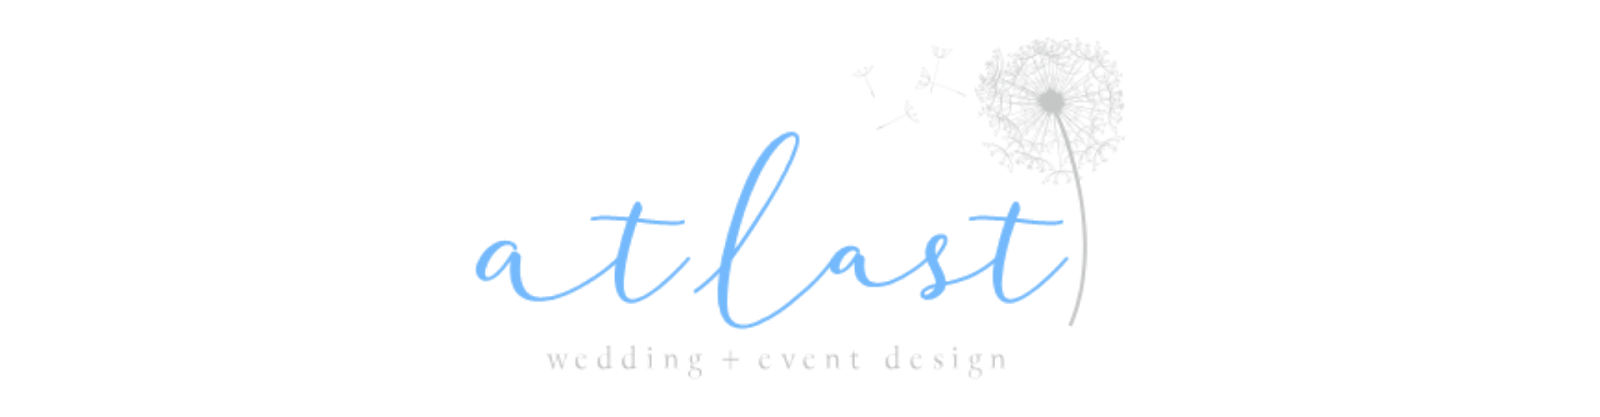 At Last Wedding + Event Design